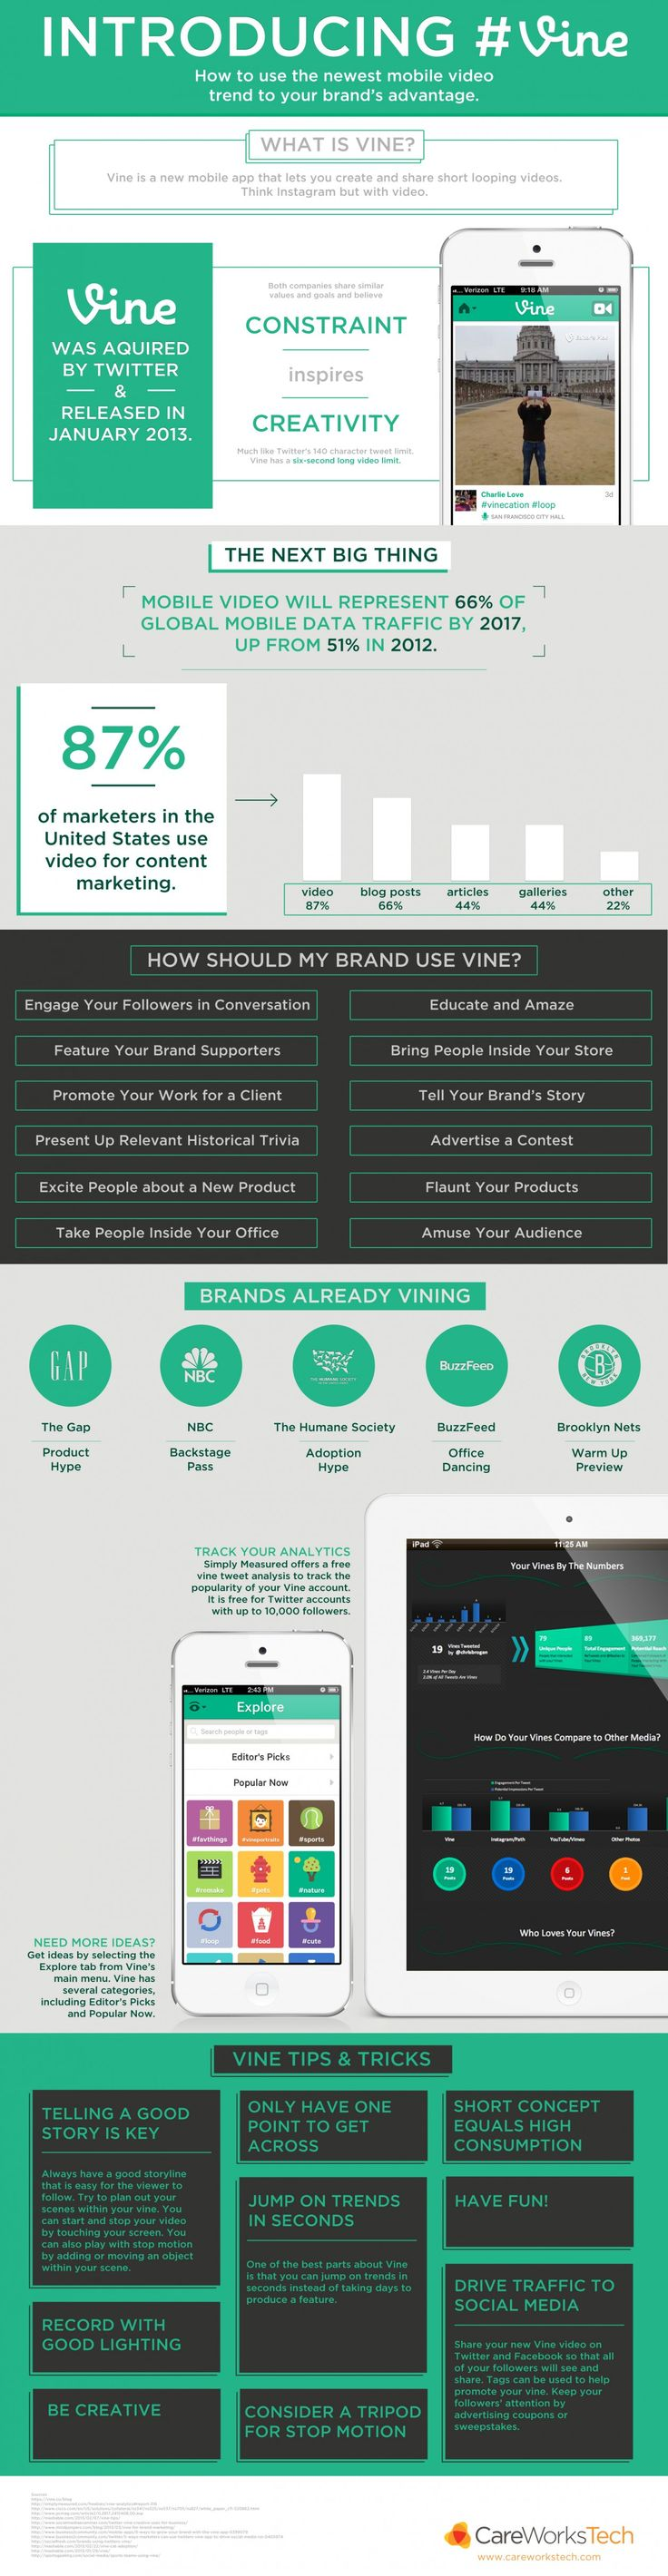 How Your Company Should Use #Vine.  #VideoMarketing #SocialMedia [Infographic]